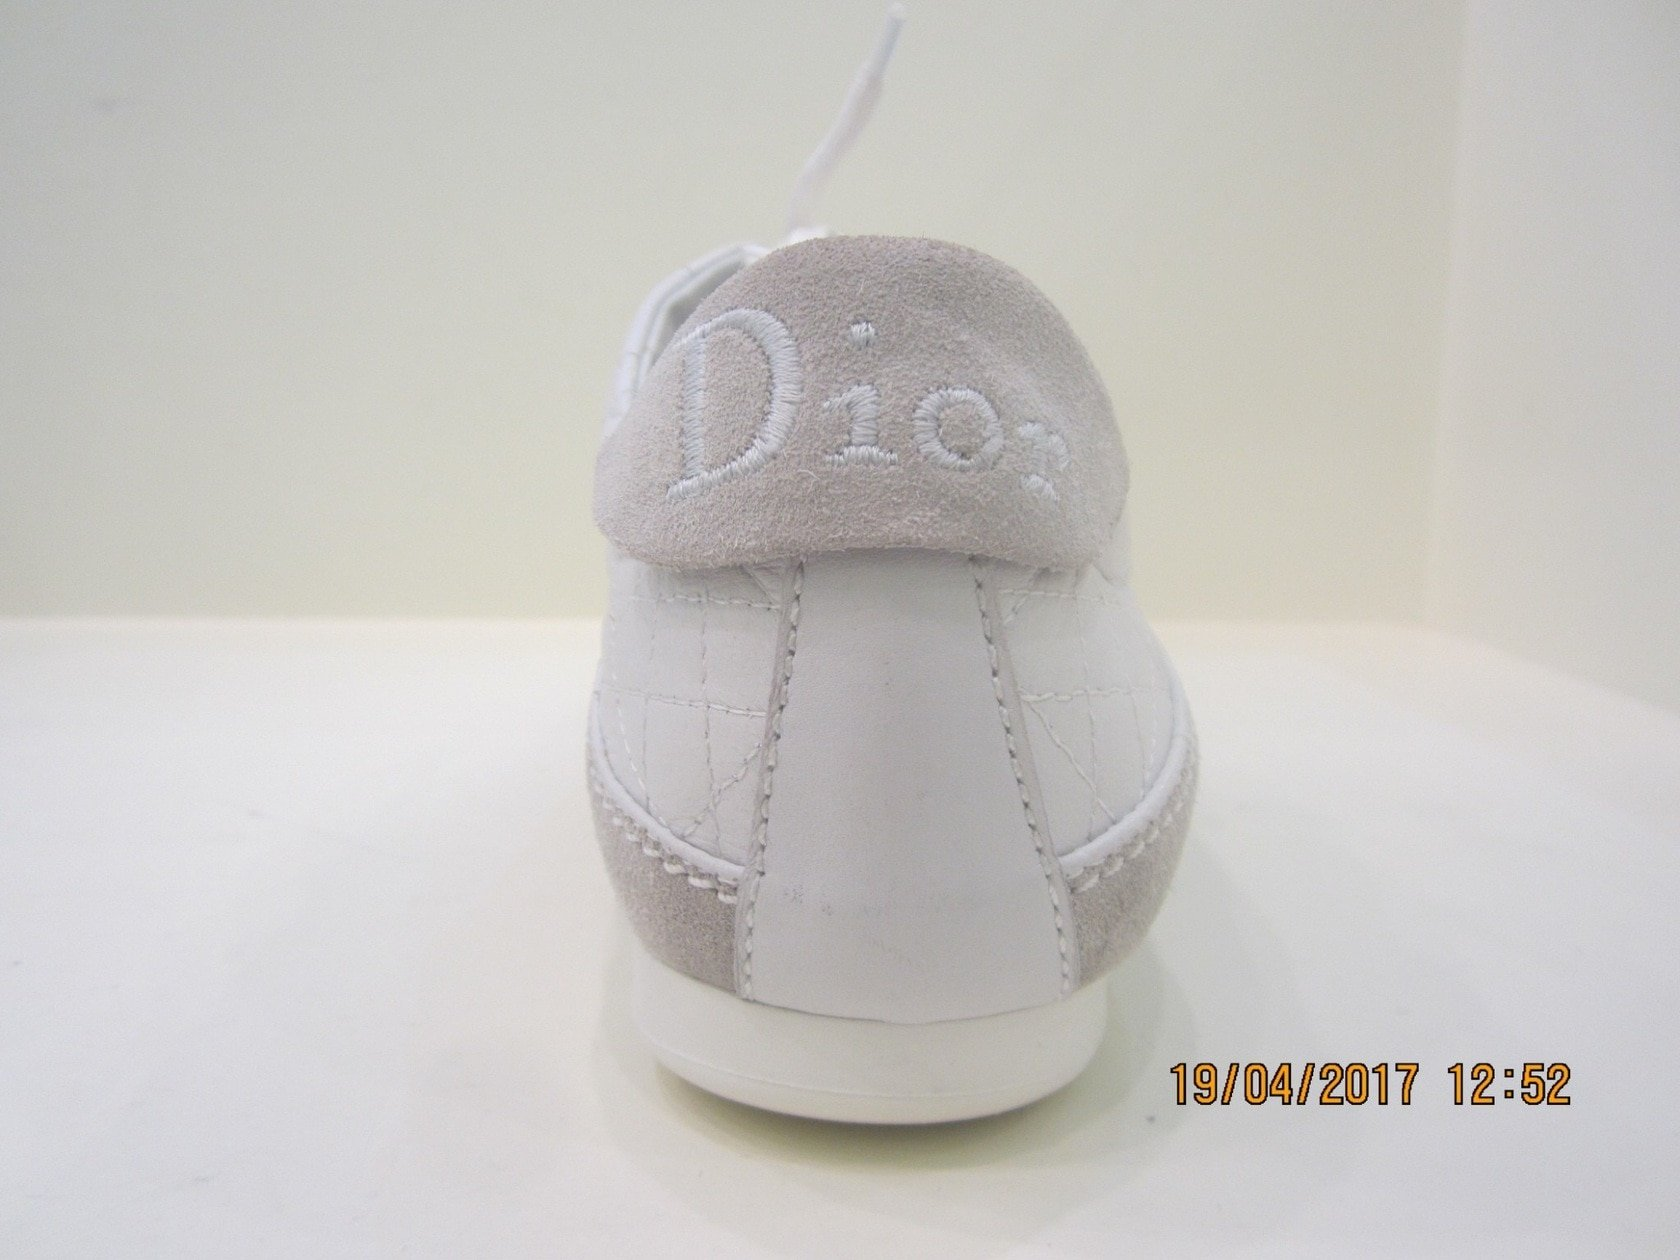 Christian Dior shoes white leather size 40